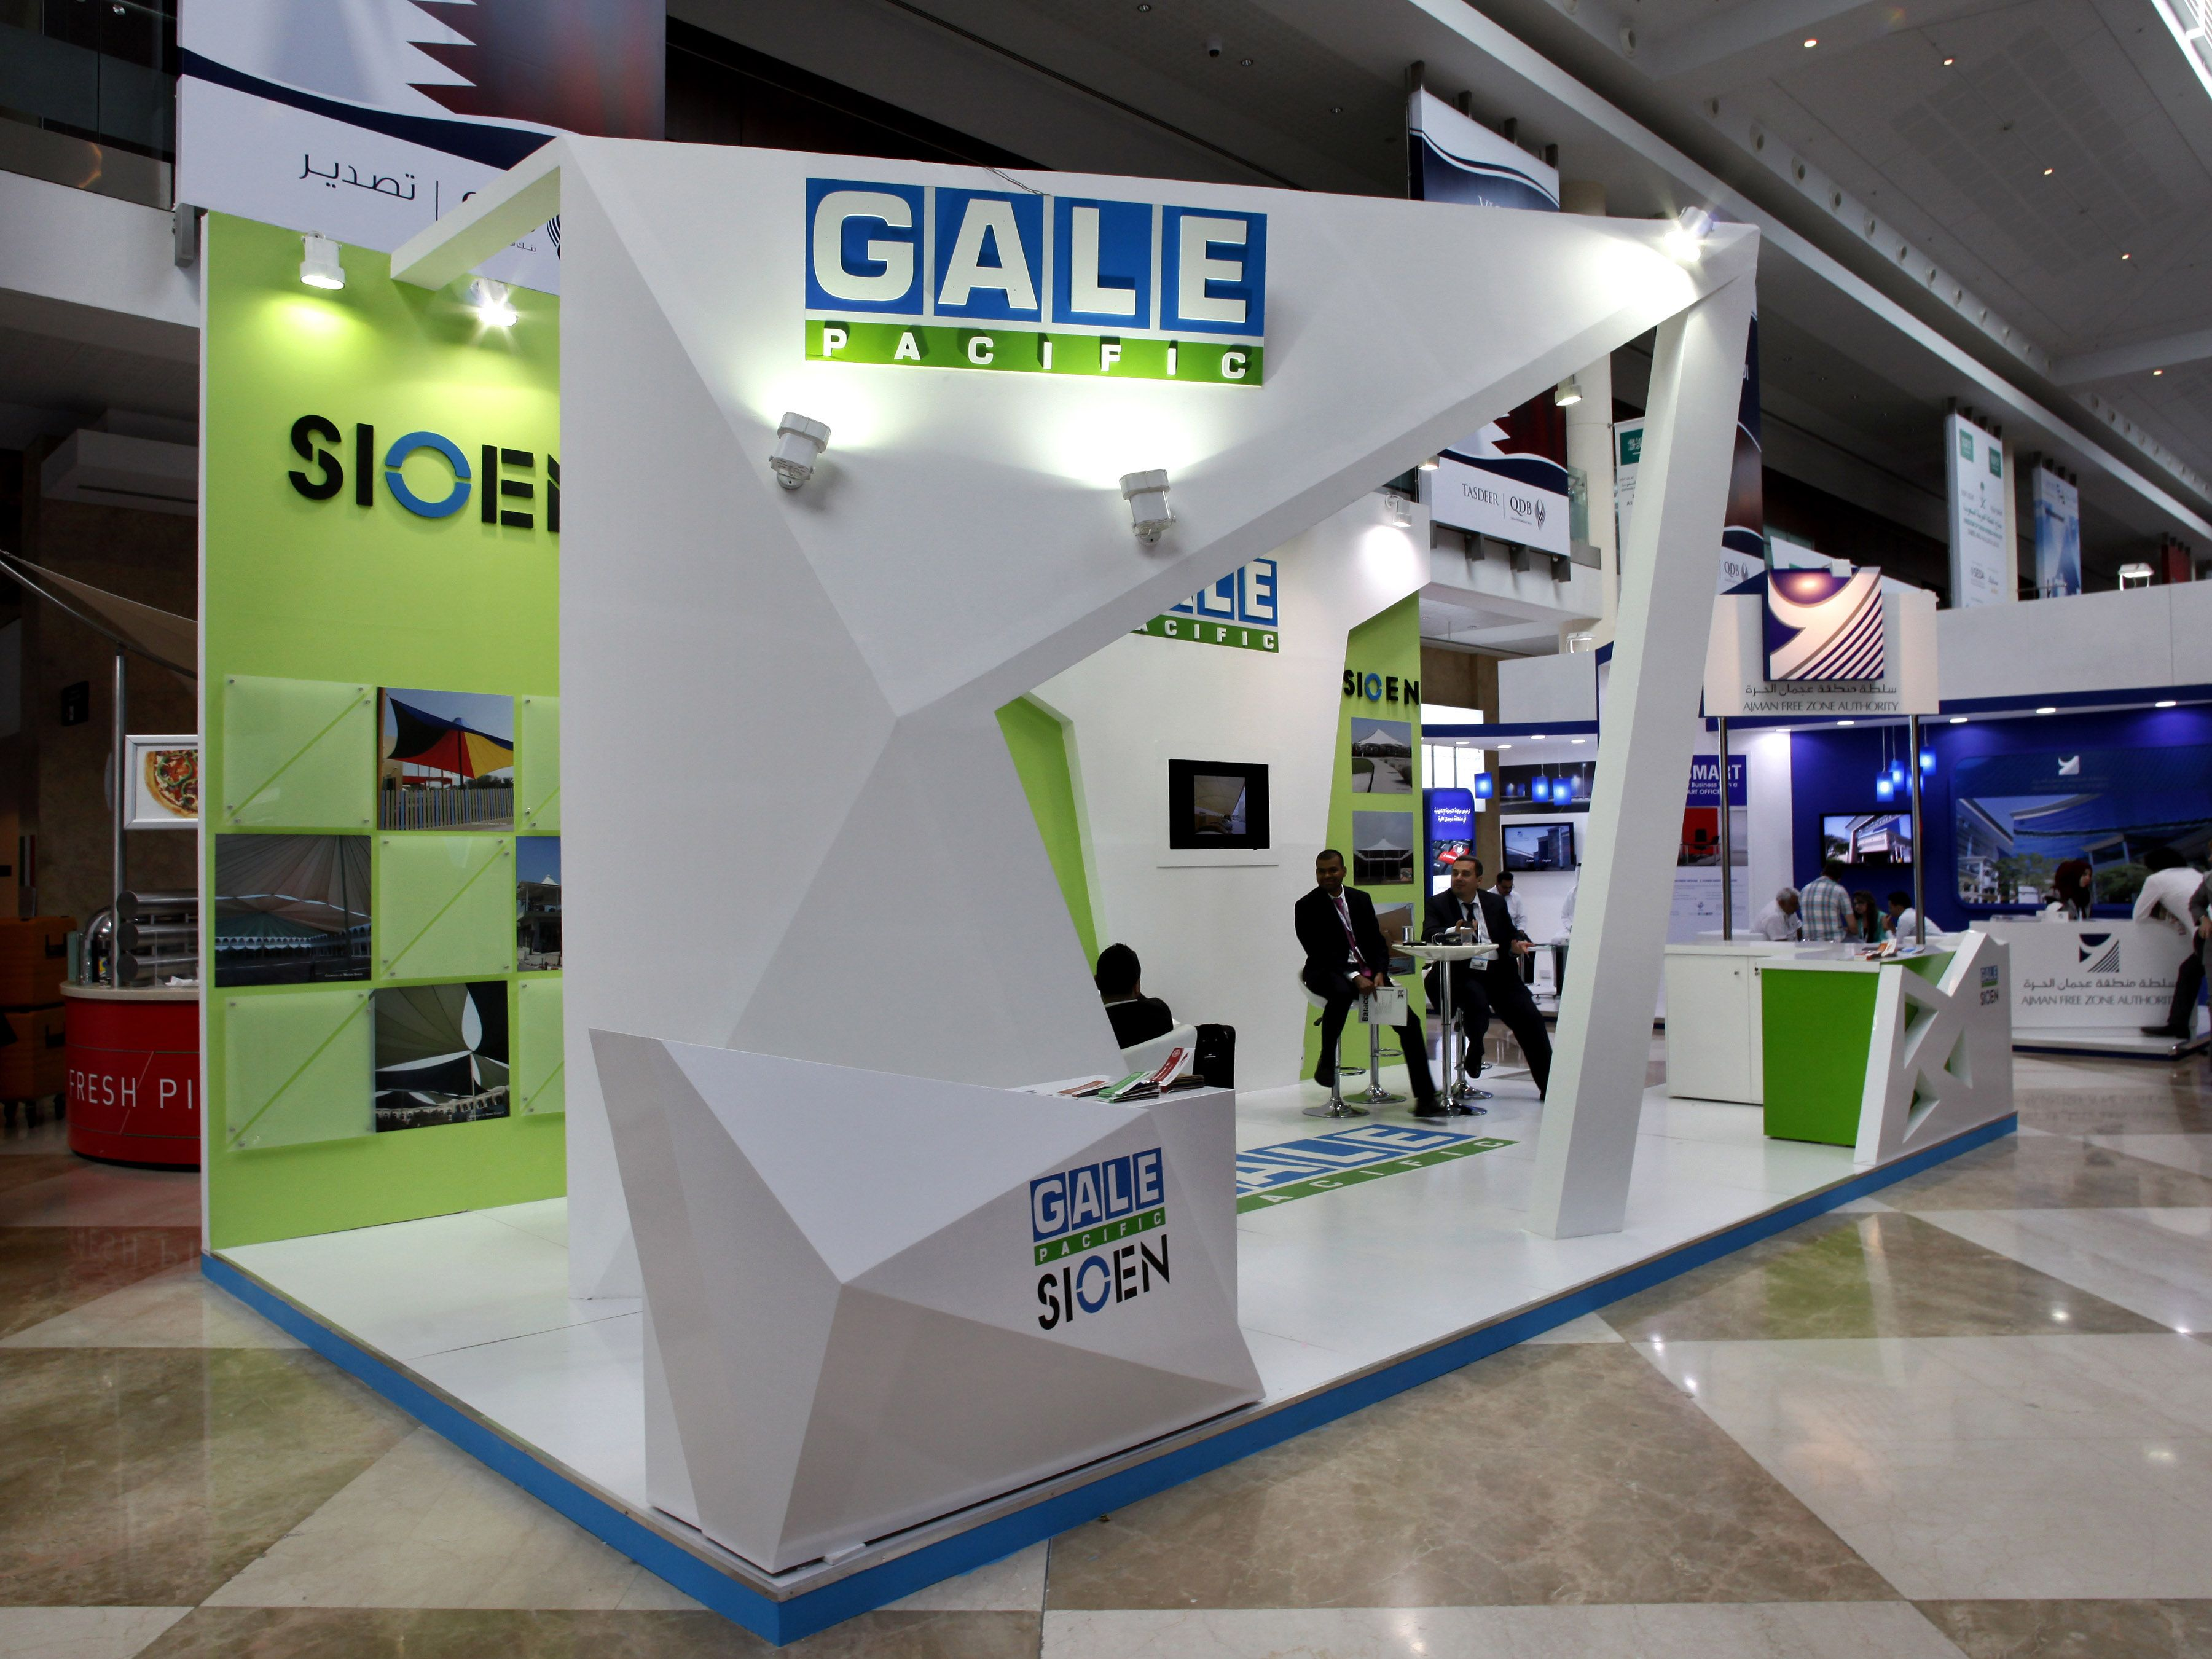 Portable Exhibition Stands In Dubai : Gale pacific exhibition stand designed and produced by